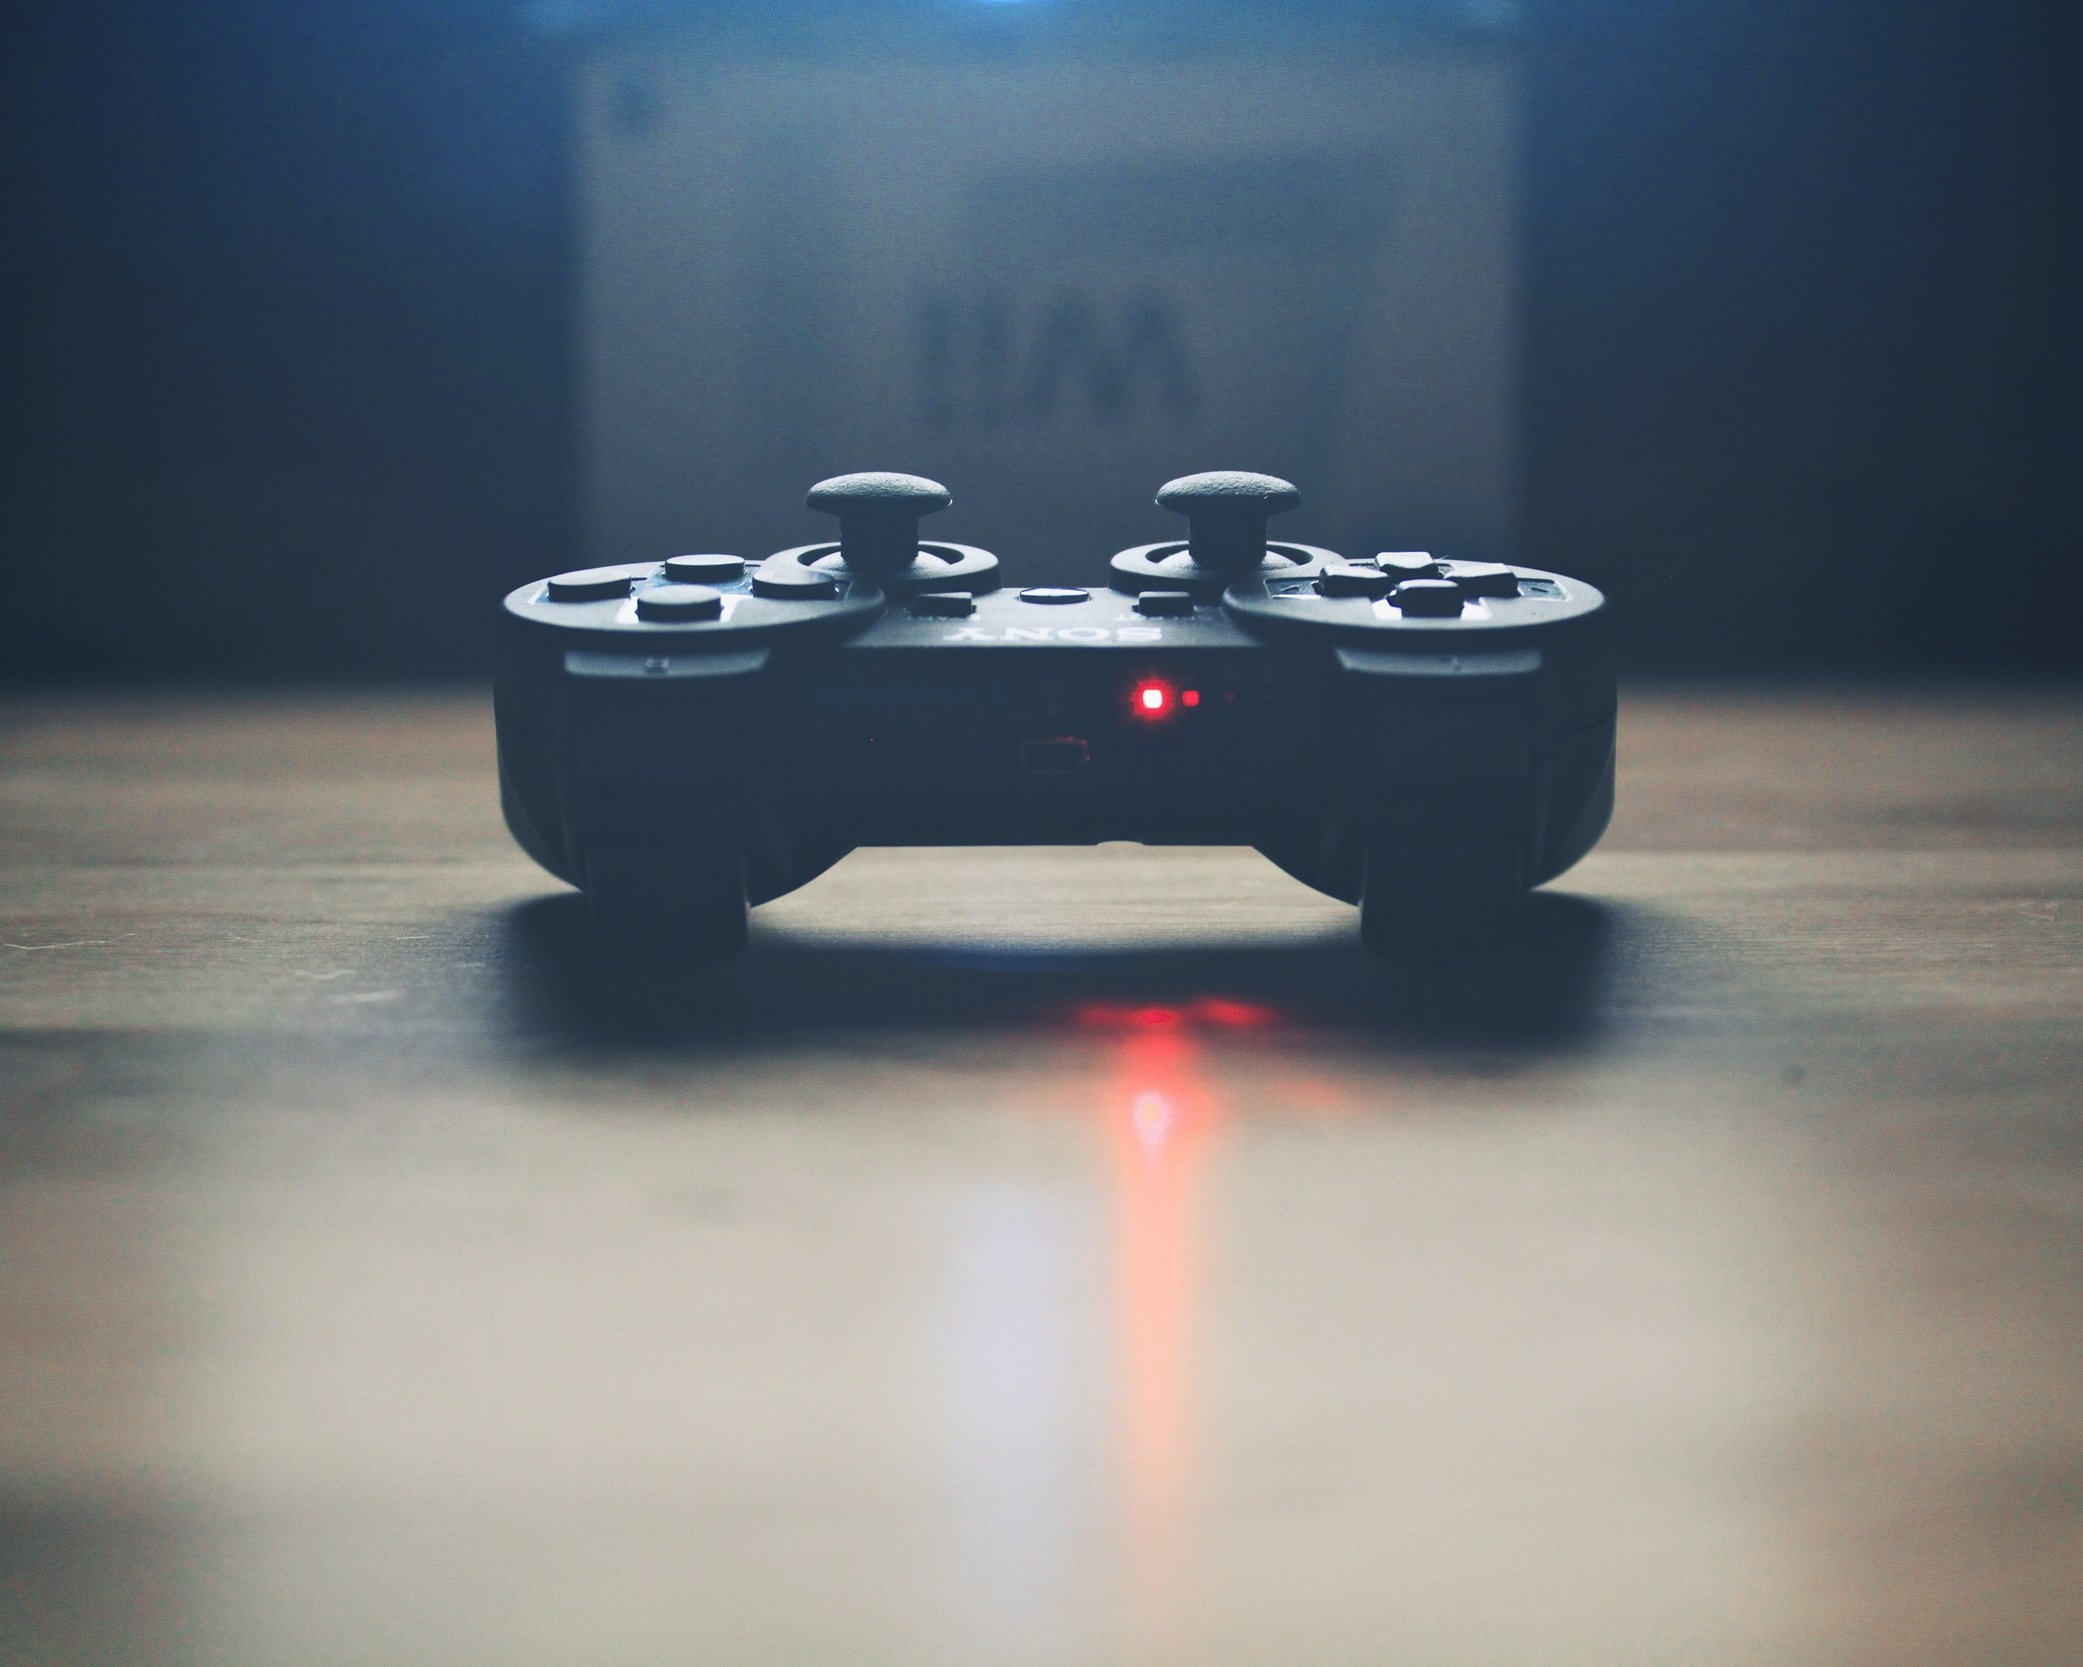 Gaming - The Gaming section considers video- and app-based gaming culture and the effects of gameplay.